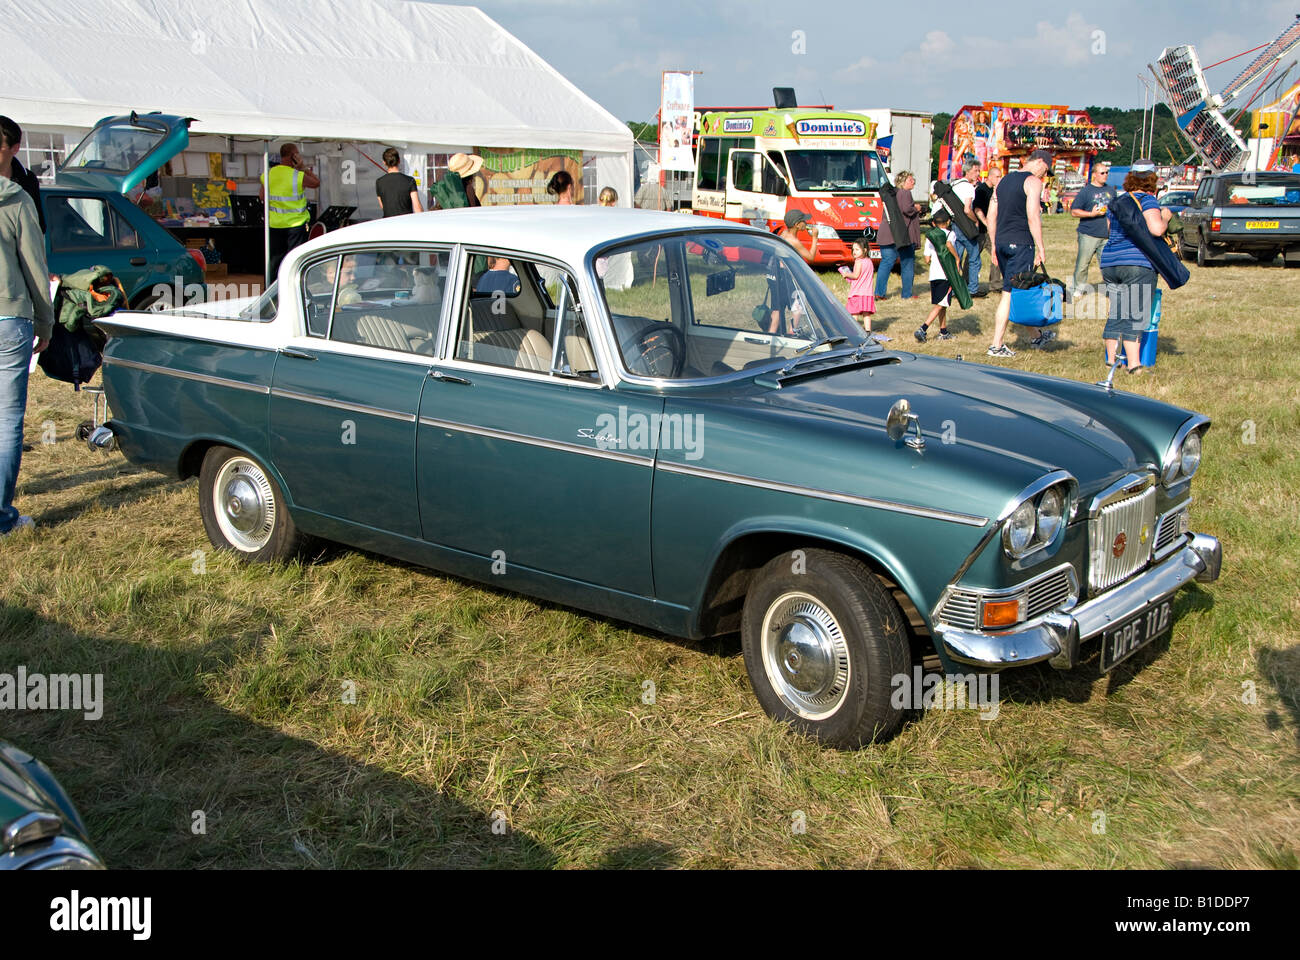 Old Cars Humber Stock Photos & Old Cars Humber Stock Images - Alamy